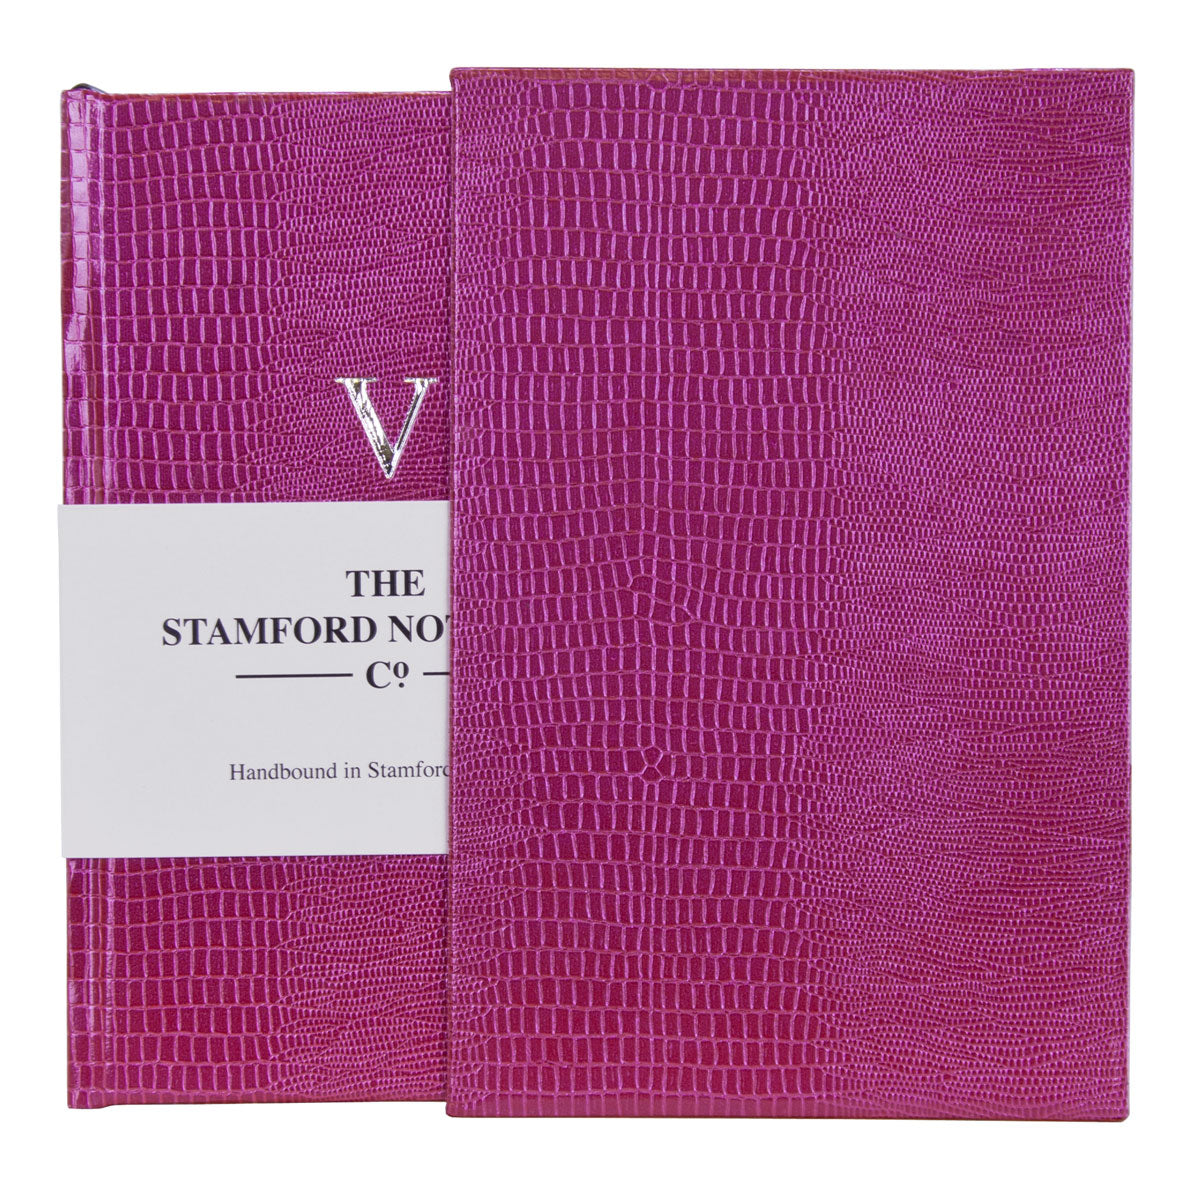 Five Year Diary handbound in Fuxia Iguana Embossed cover with matching slip case